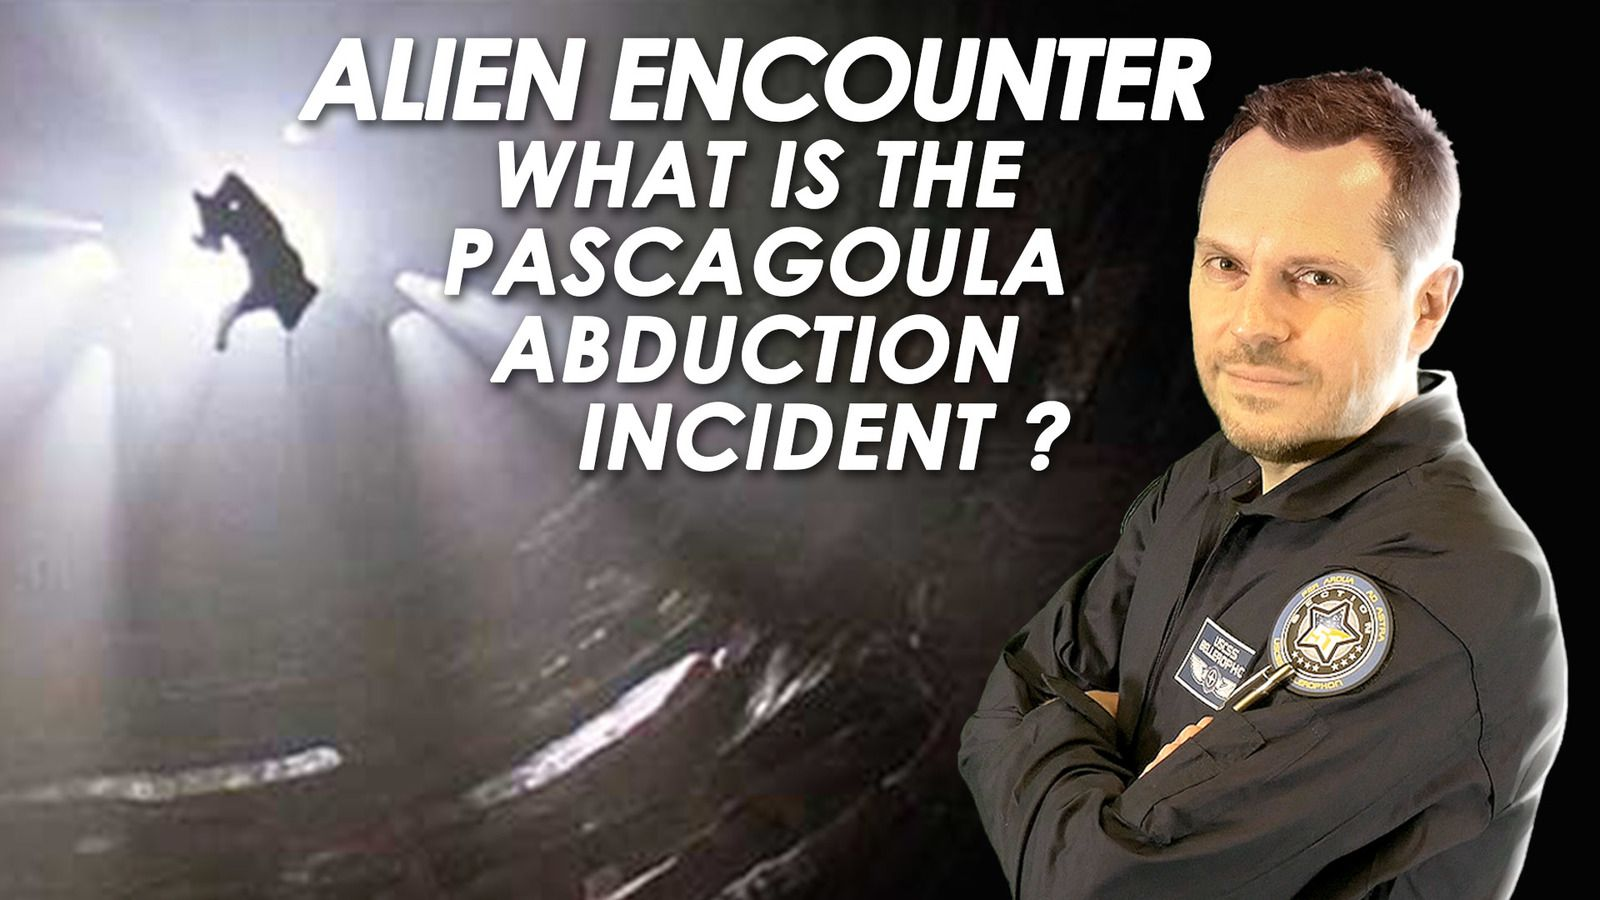 👽 Alien Encounter - The Pascagoula Abduction Incident